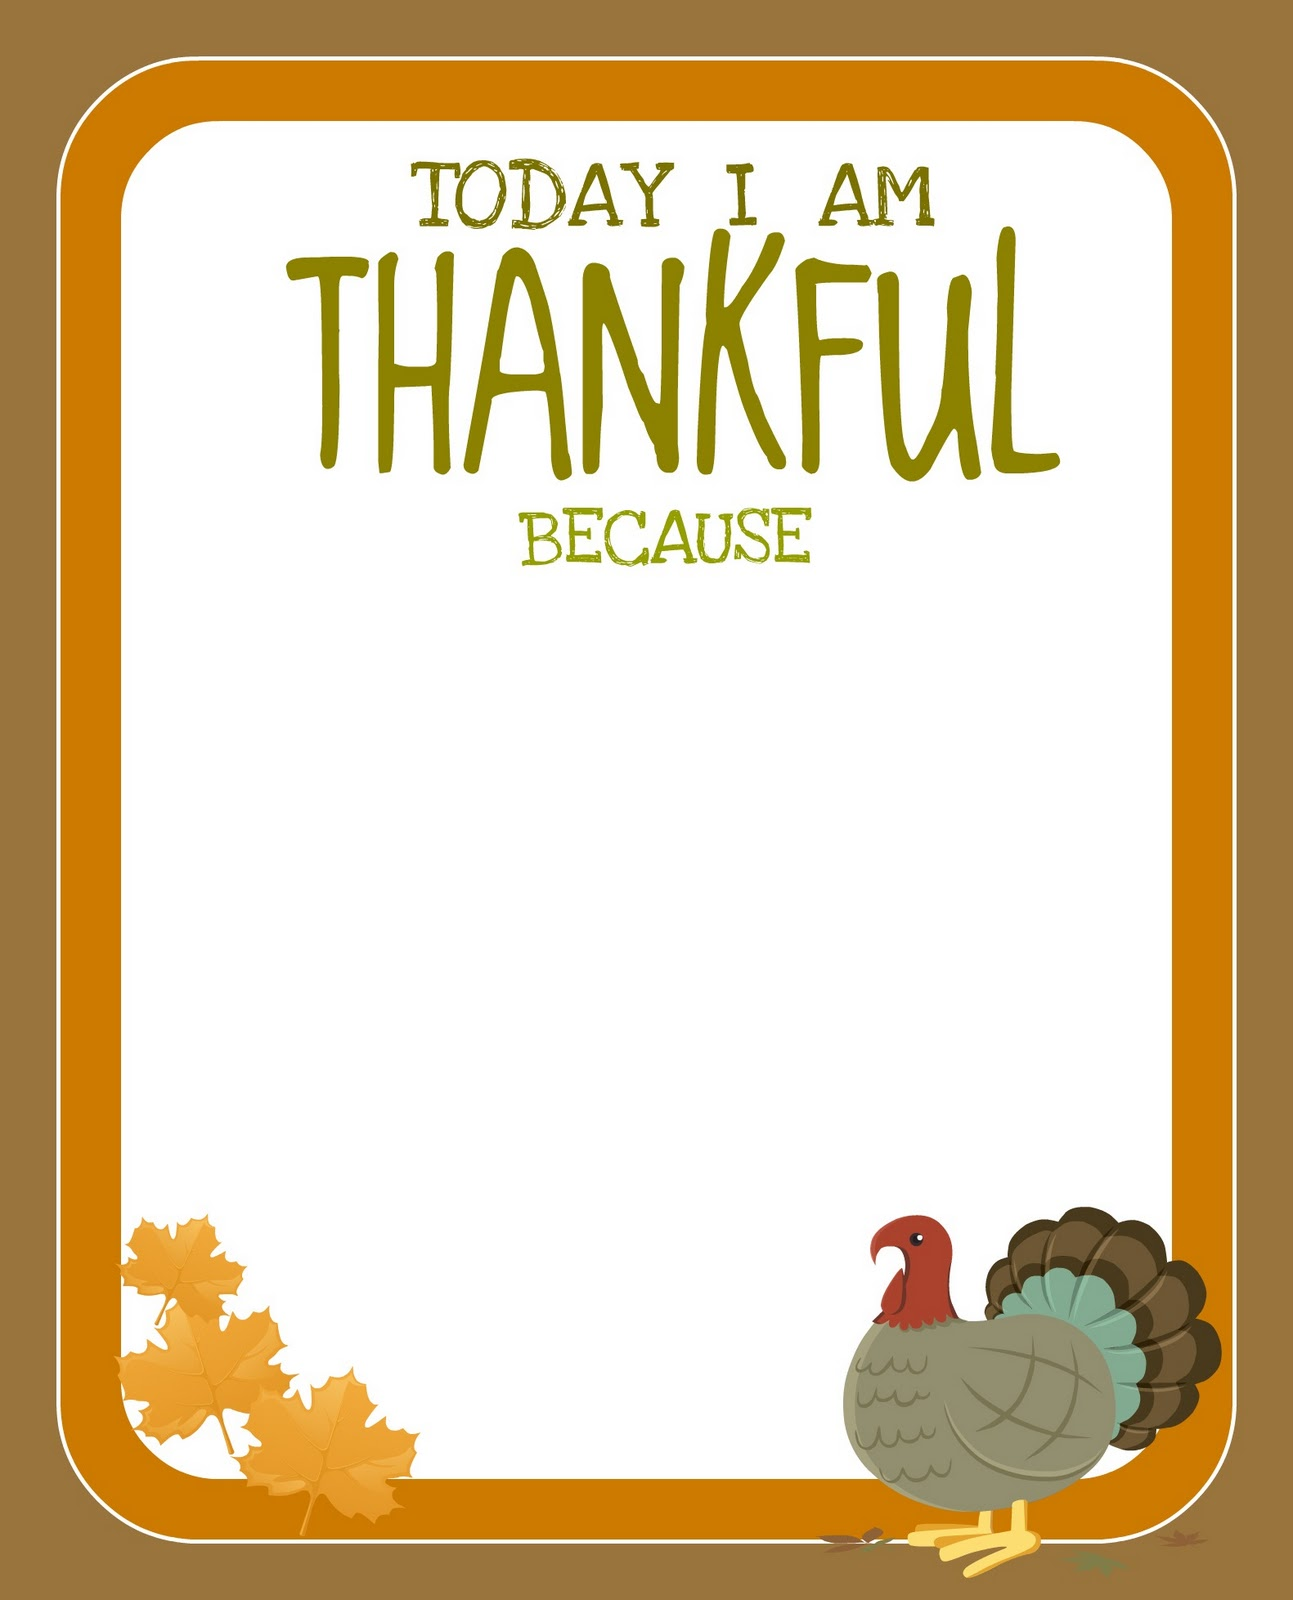 Bewitching image intended for free printable turkey template